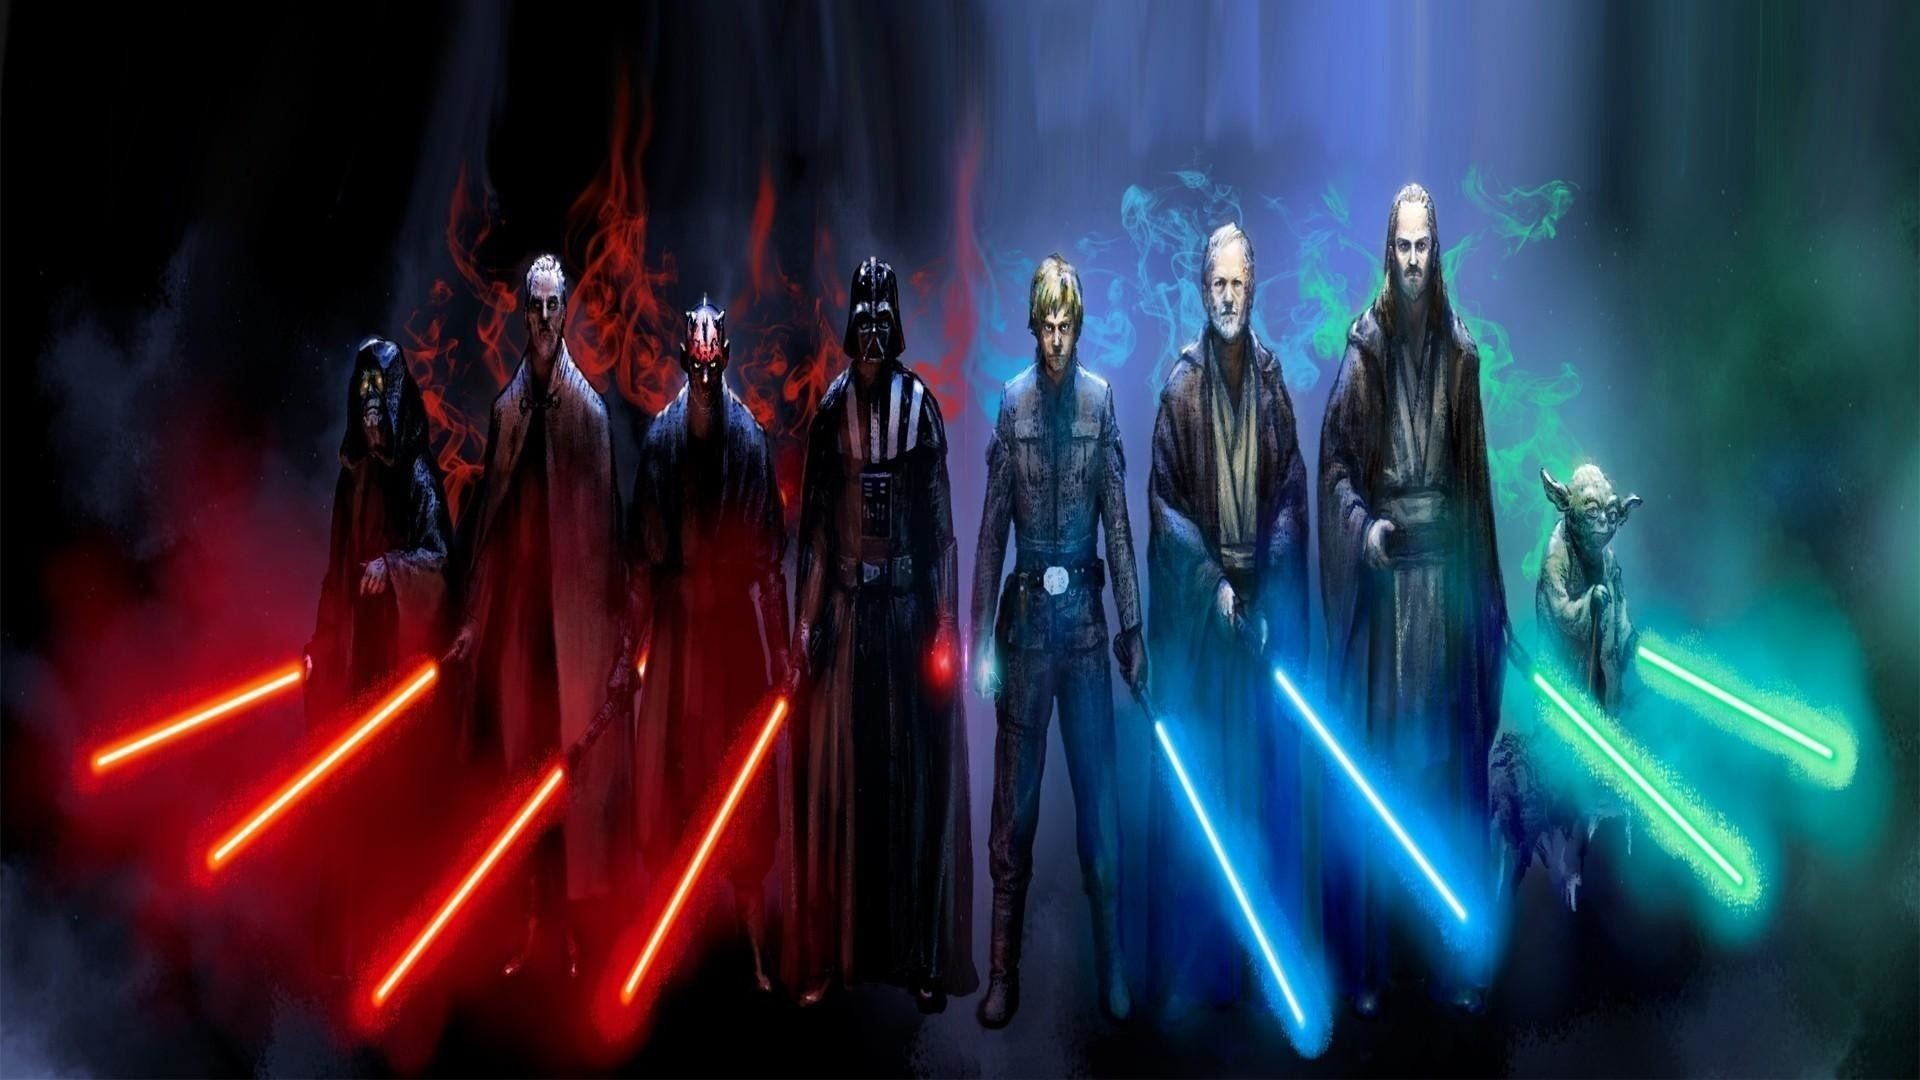 Res: 1920x1080, 10 Best Jedi And Sith Wallpaper FULL HD 1920×1080 For PC Background